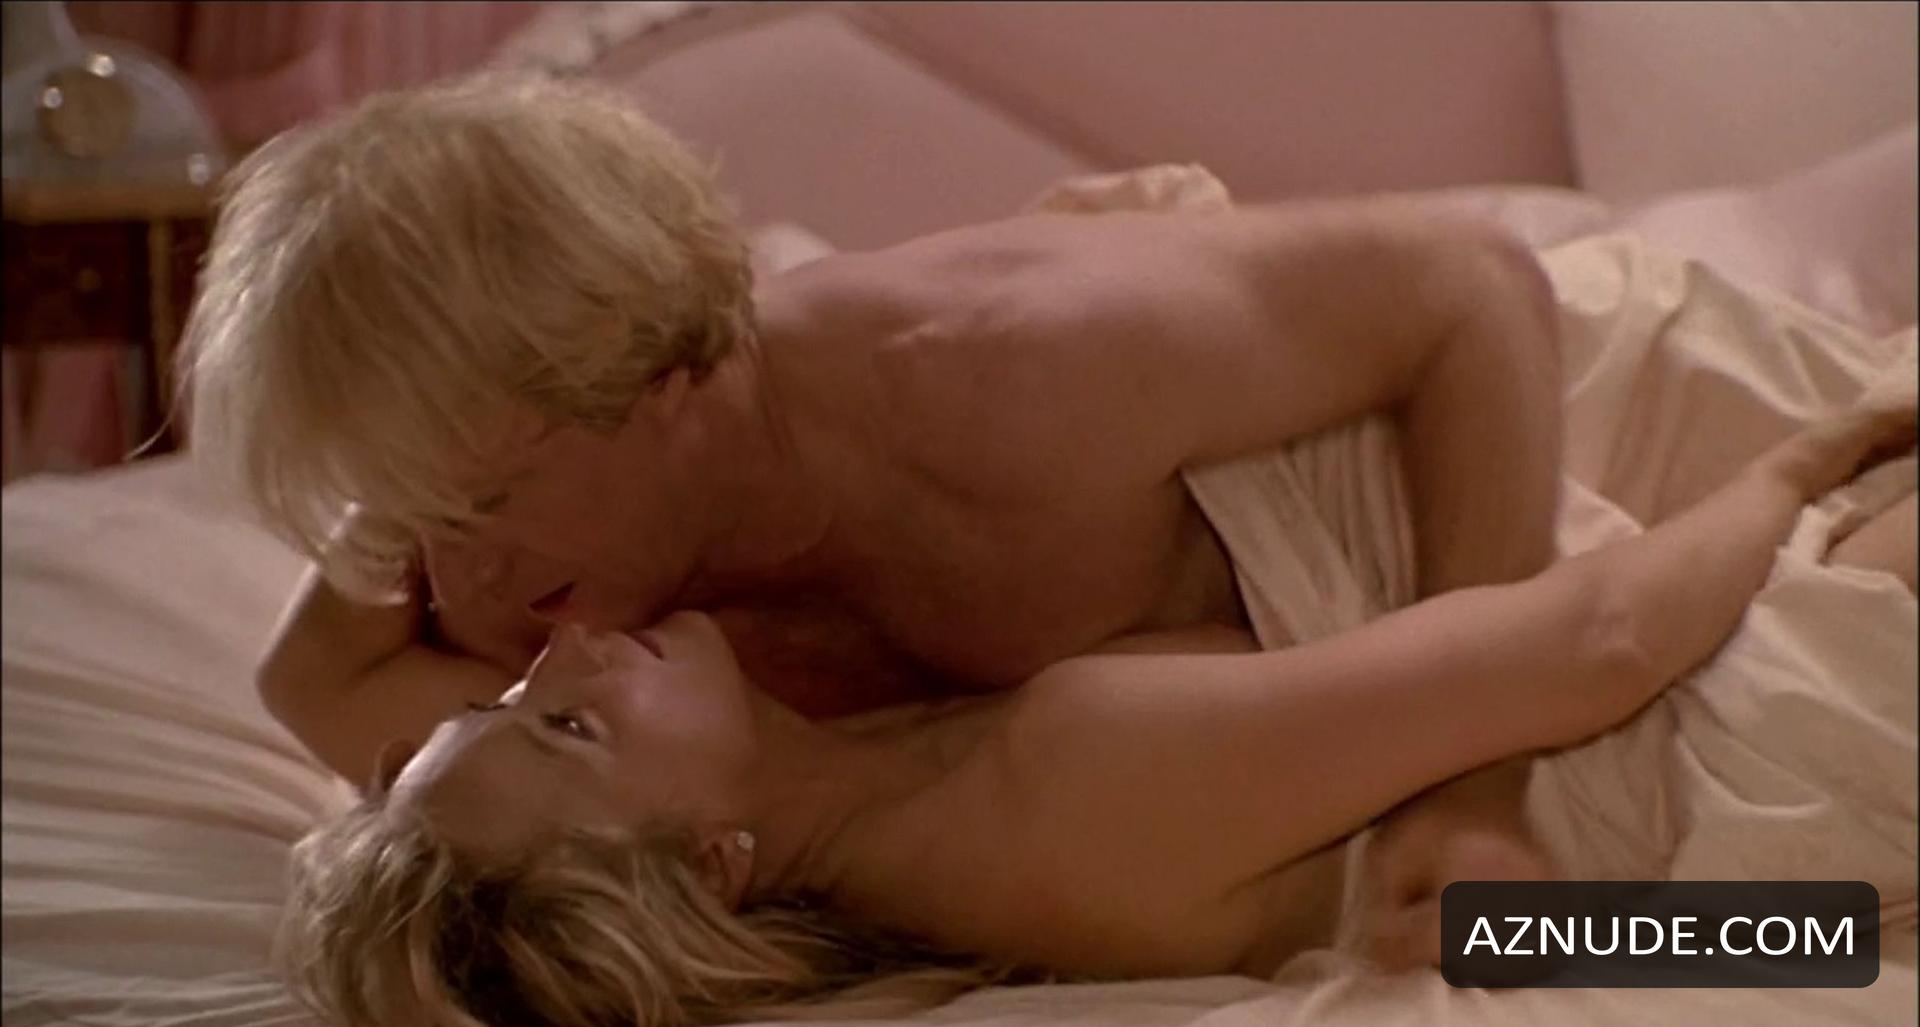 movie-meryl-streep-nude-charity-hodges-boyfriend